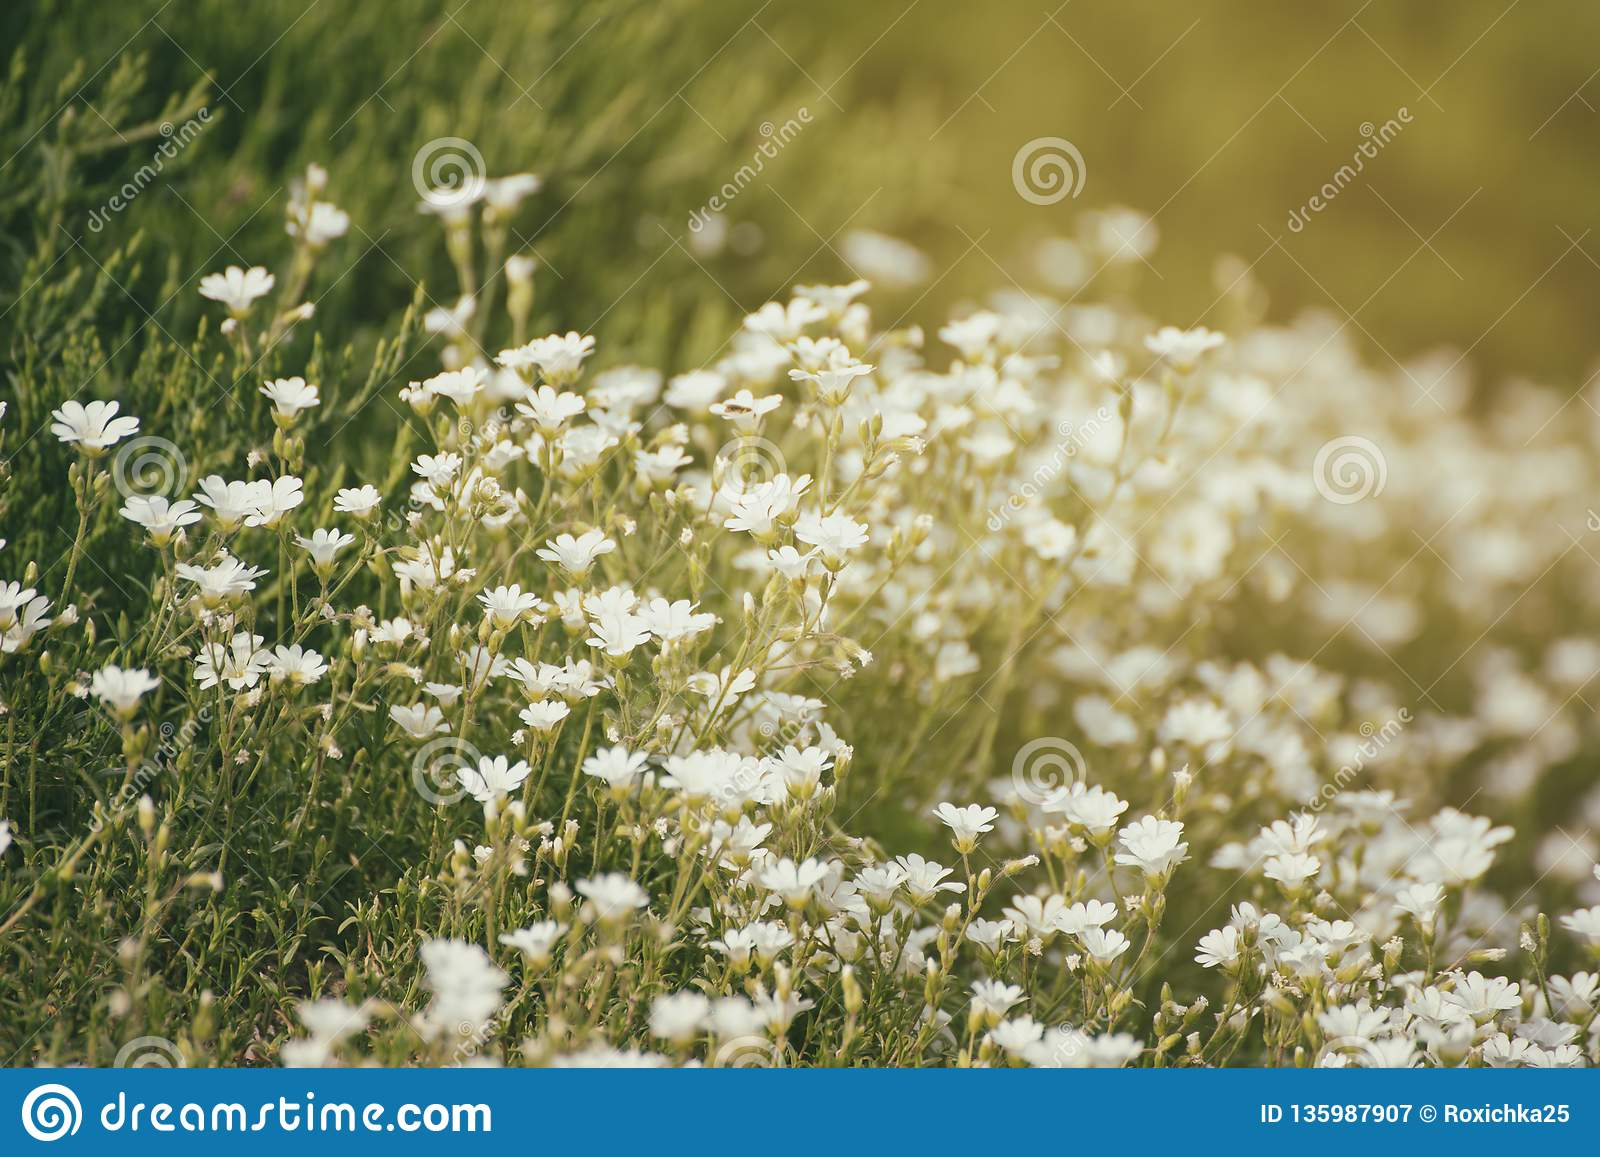 White Spring Flowers Stock Image Image Of Growth Meadow 135987907